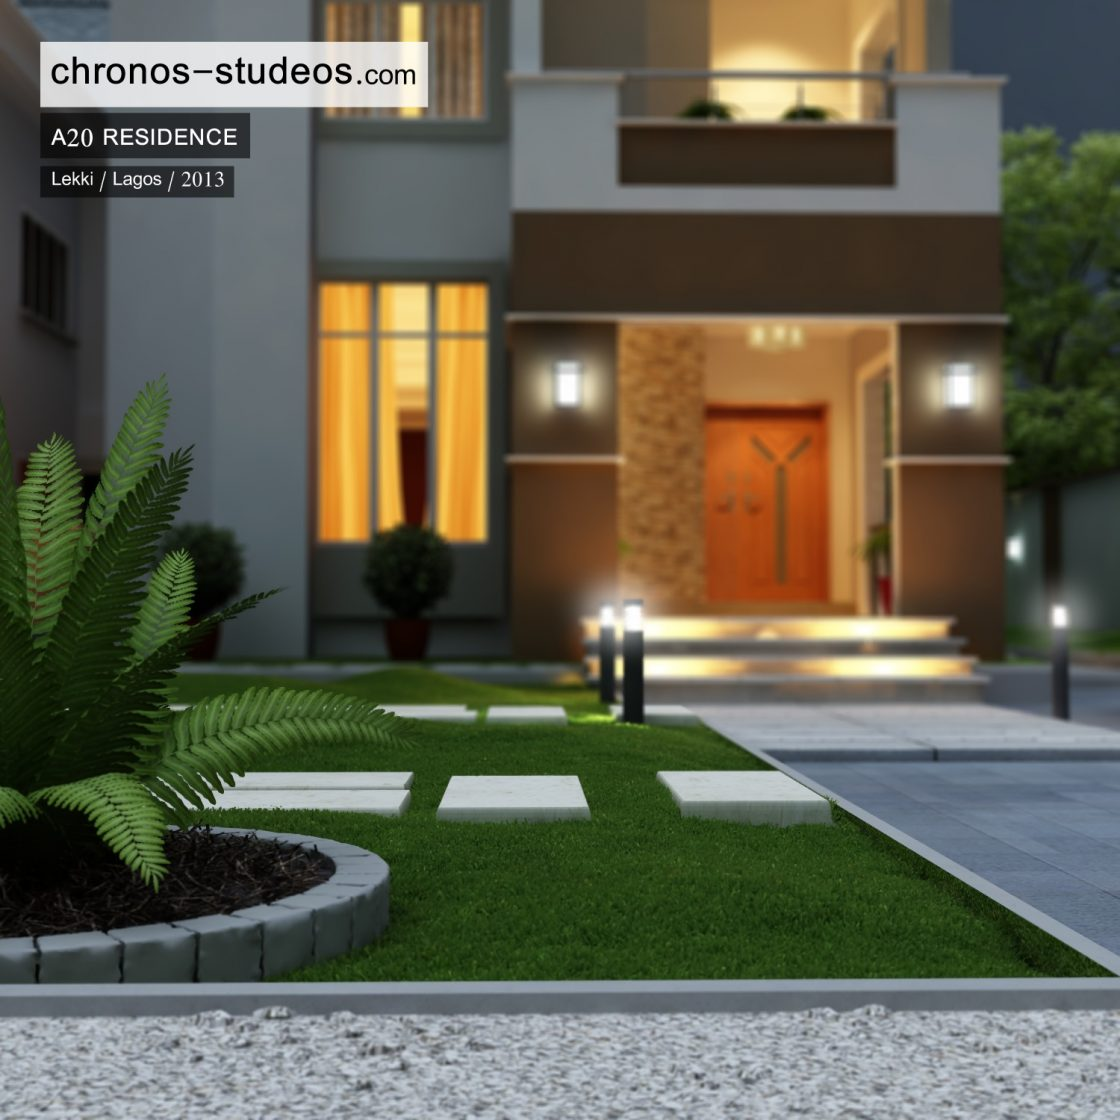 chronos studeos 3d rendering residential apartment house plan lagos architects (3)